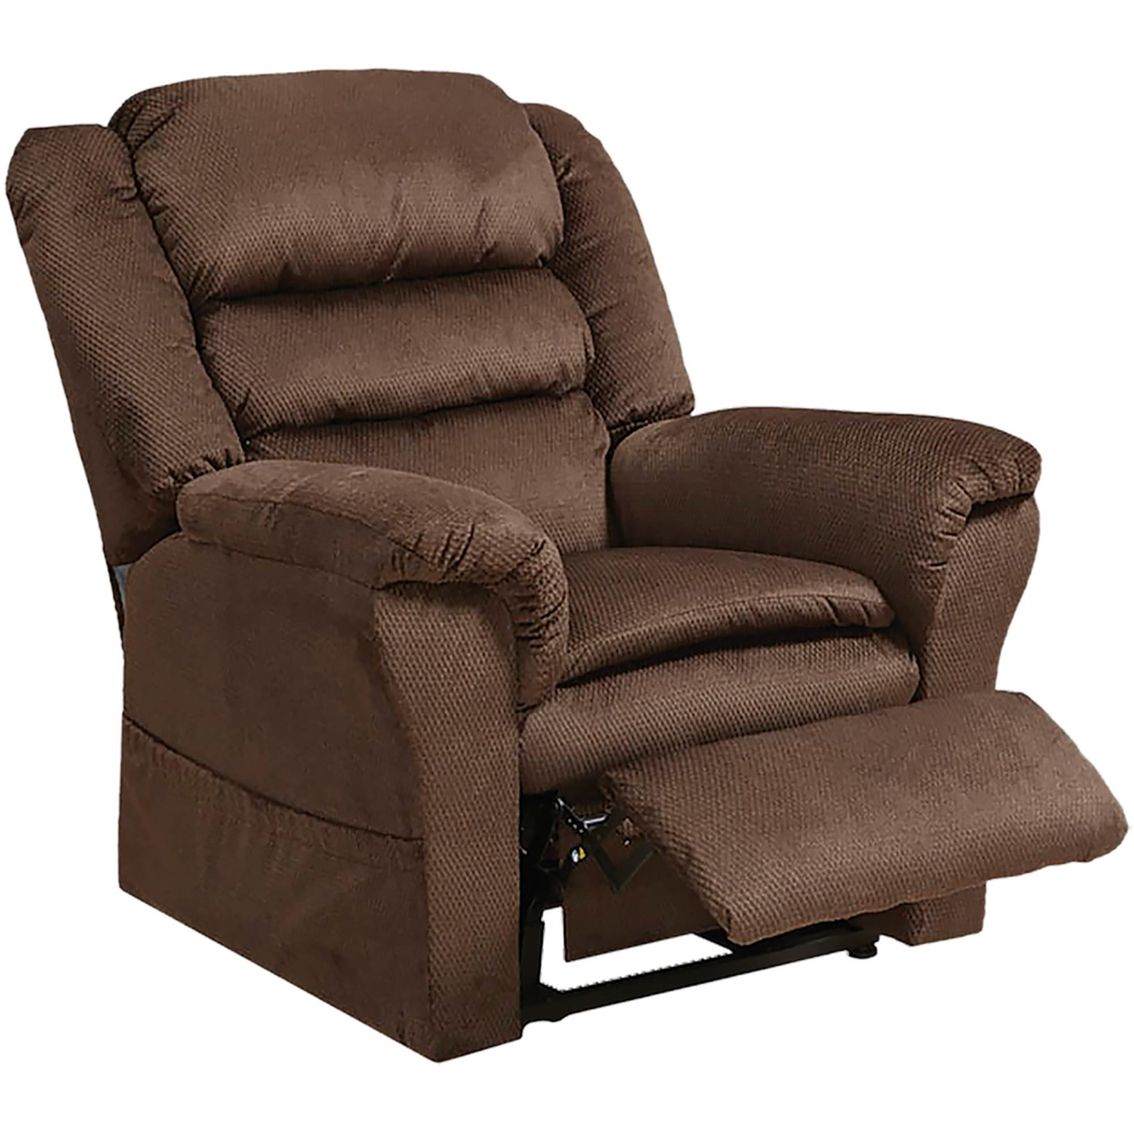 lift chairs walmart folding chair nisse catnapper preston recilner and recliners